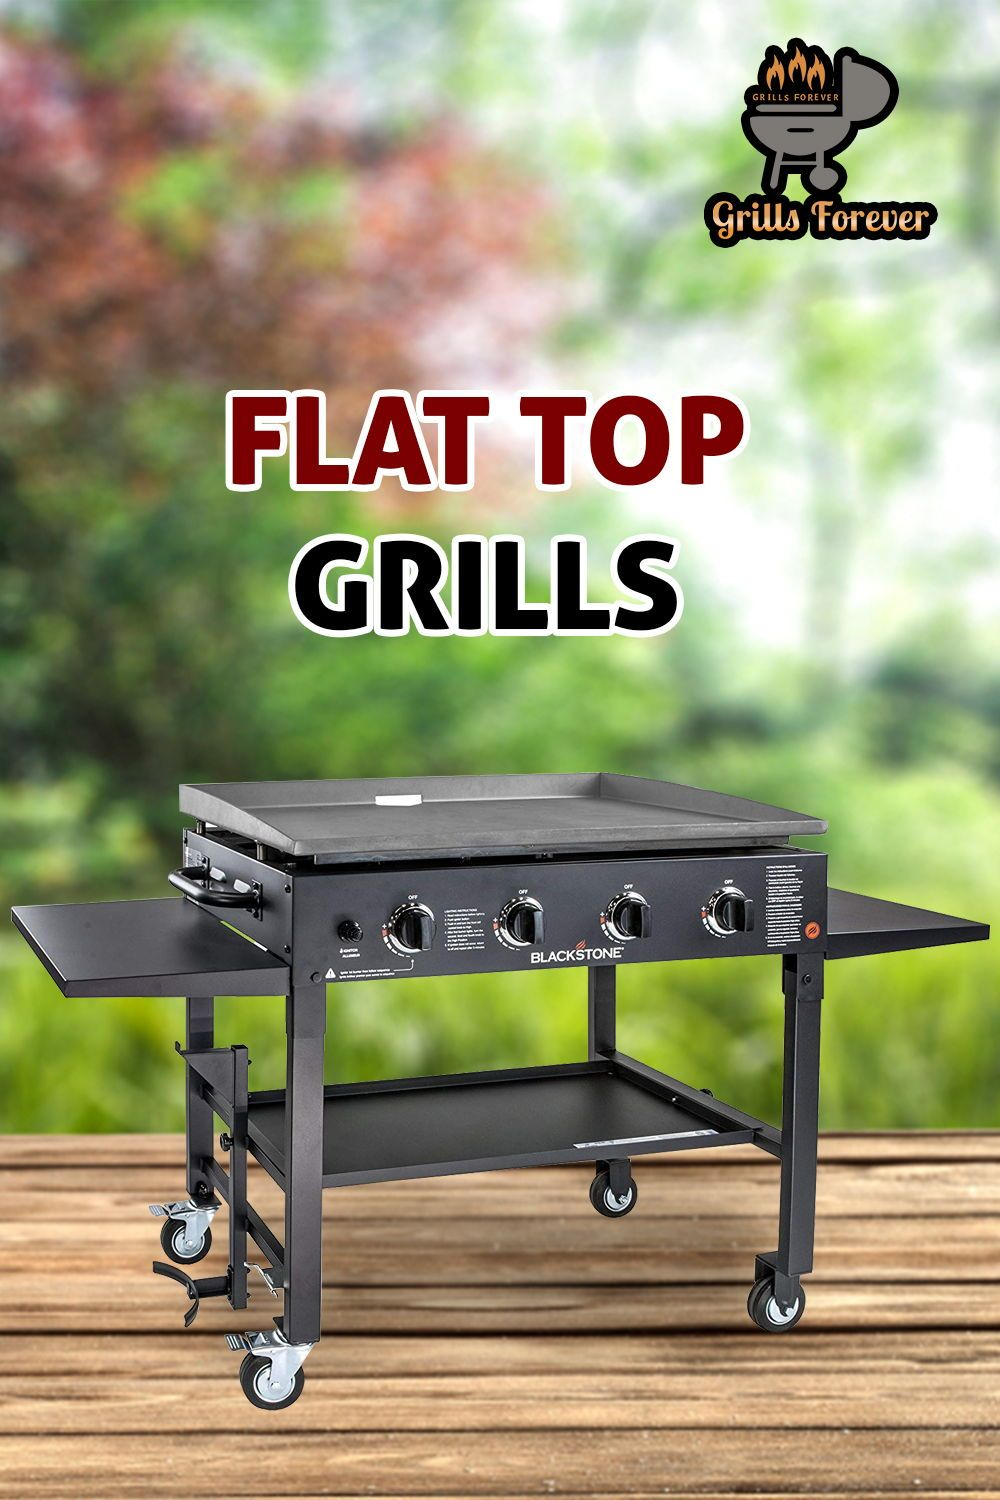 Best Flat Top Gas Grills Used Electric Flat Top Grill Used Flat Top Grill Portable Flat Top Grill How To Flat Top Grills Flat Top Grill Cleaning Bbq Grill